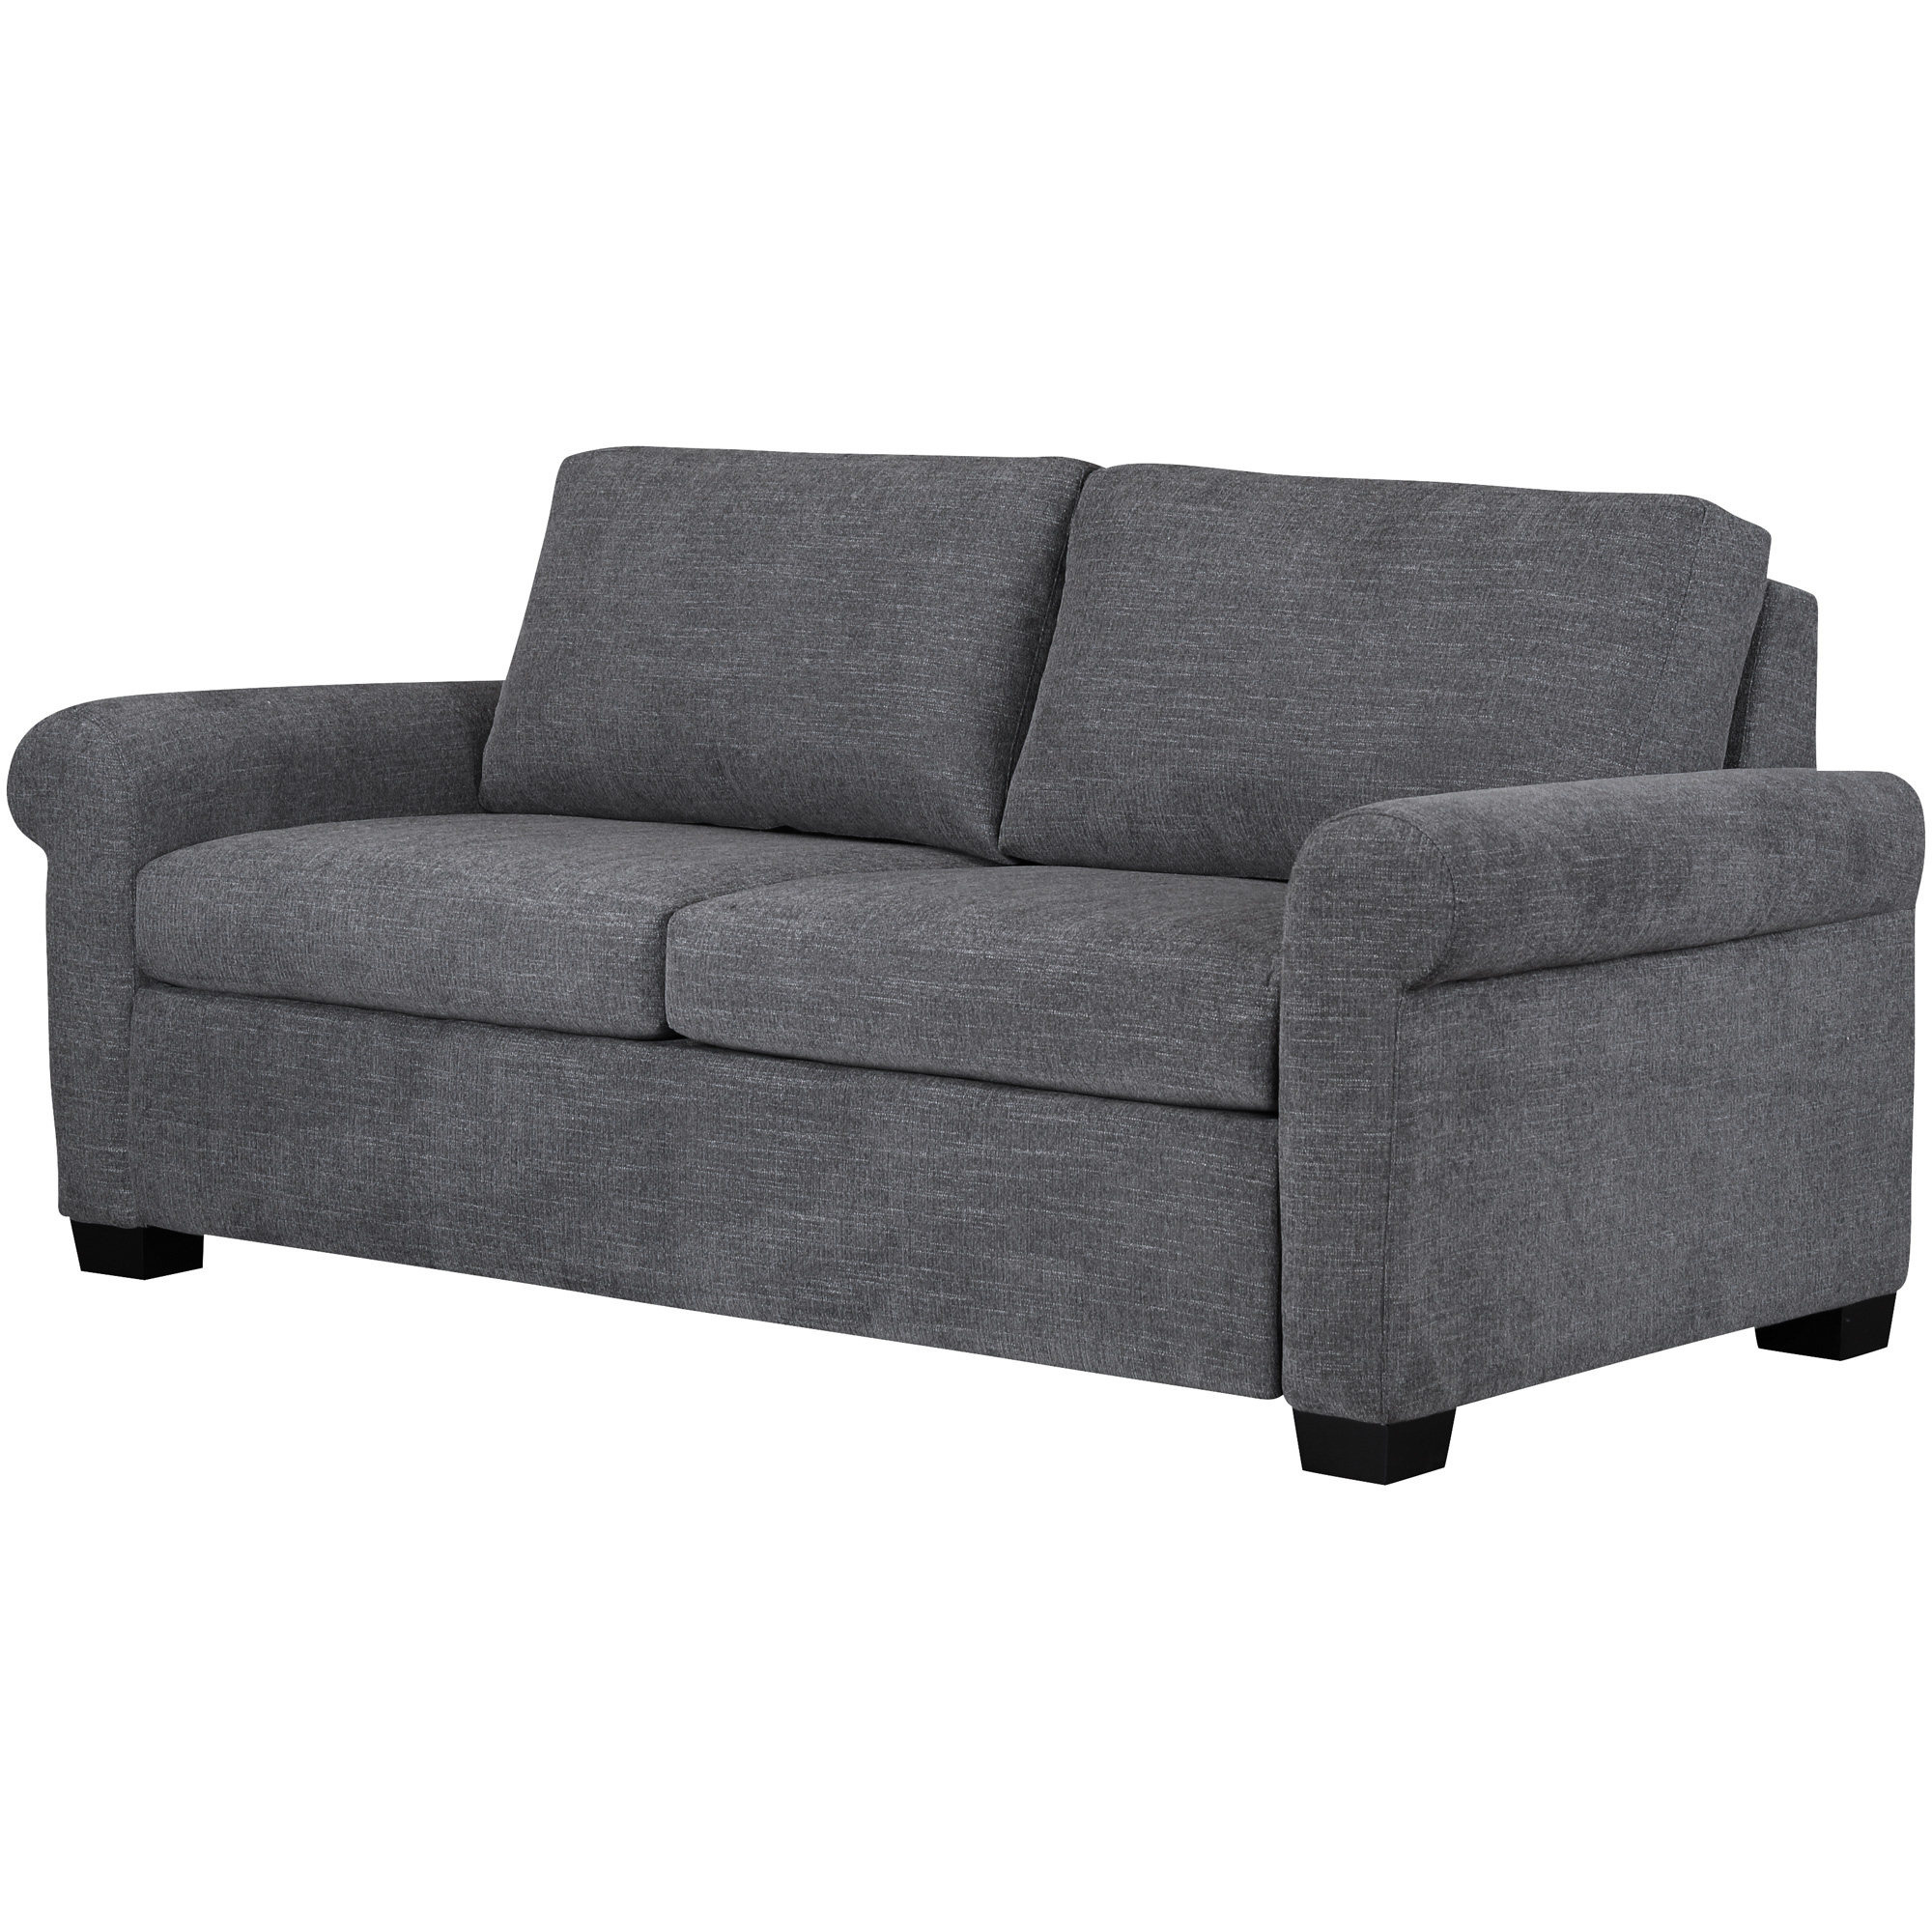 American Leather | Cortland Curious Charcoal Queen Sleeper Sofa